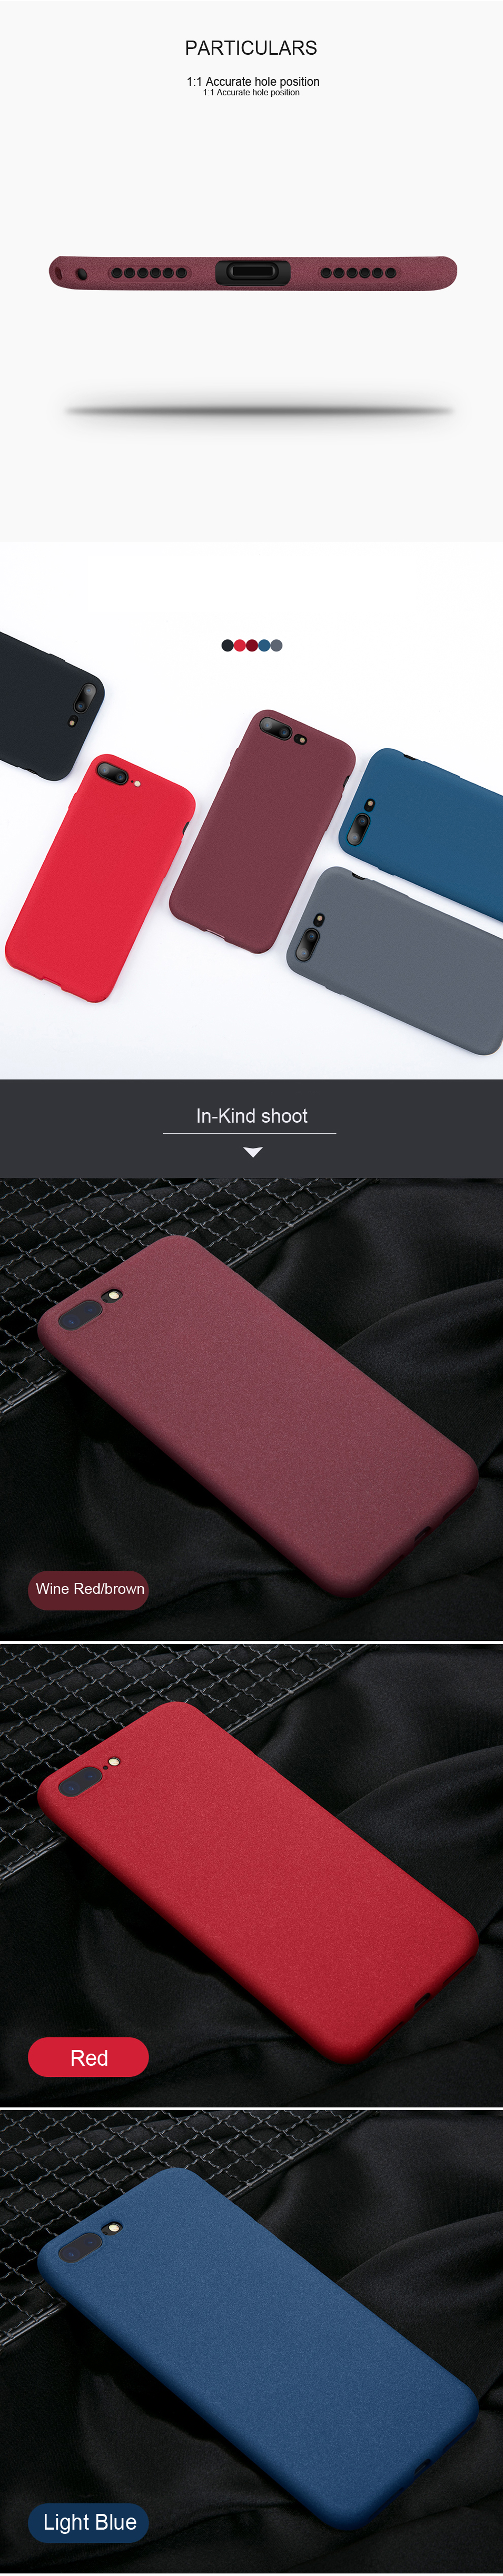 Soft Silicone Phone Case for Xiaomi Note 2 A1 Mix 2s 5X Max 2 Case Cover for Redmi Note 5A Prime 2S 5 Plus Case Matte Back Cover (14)